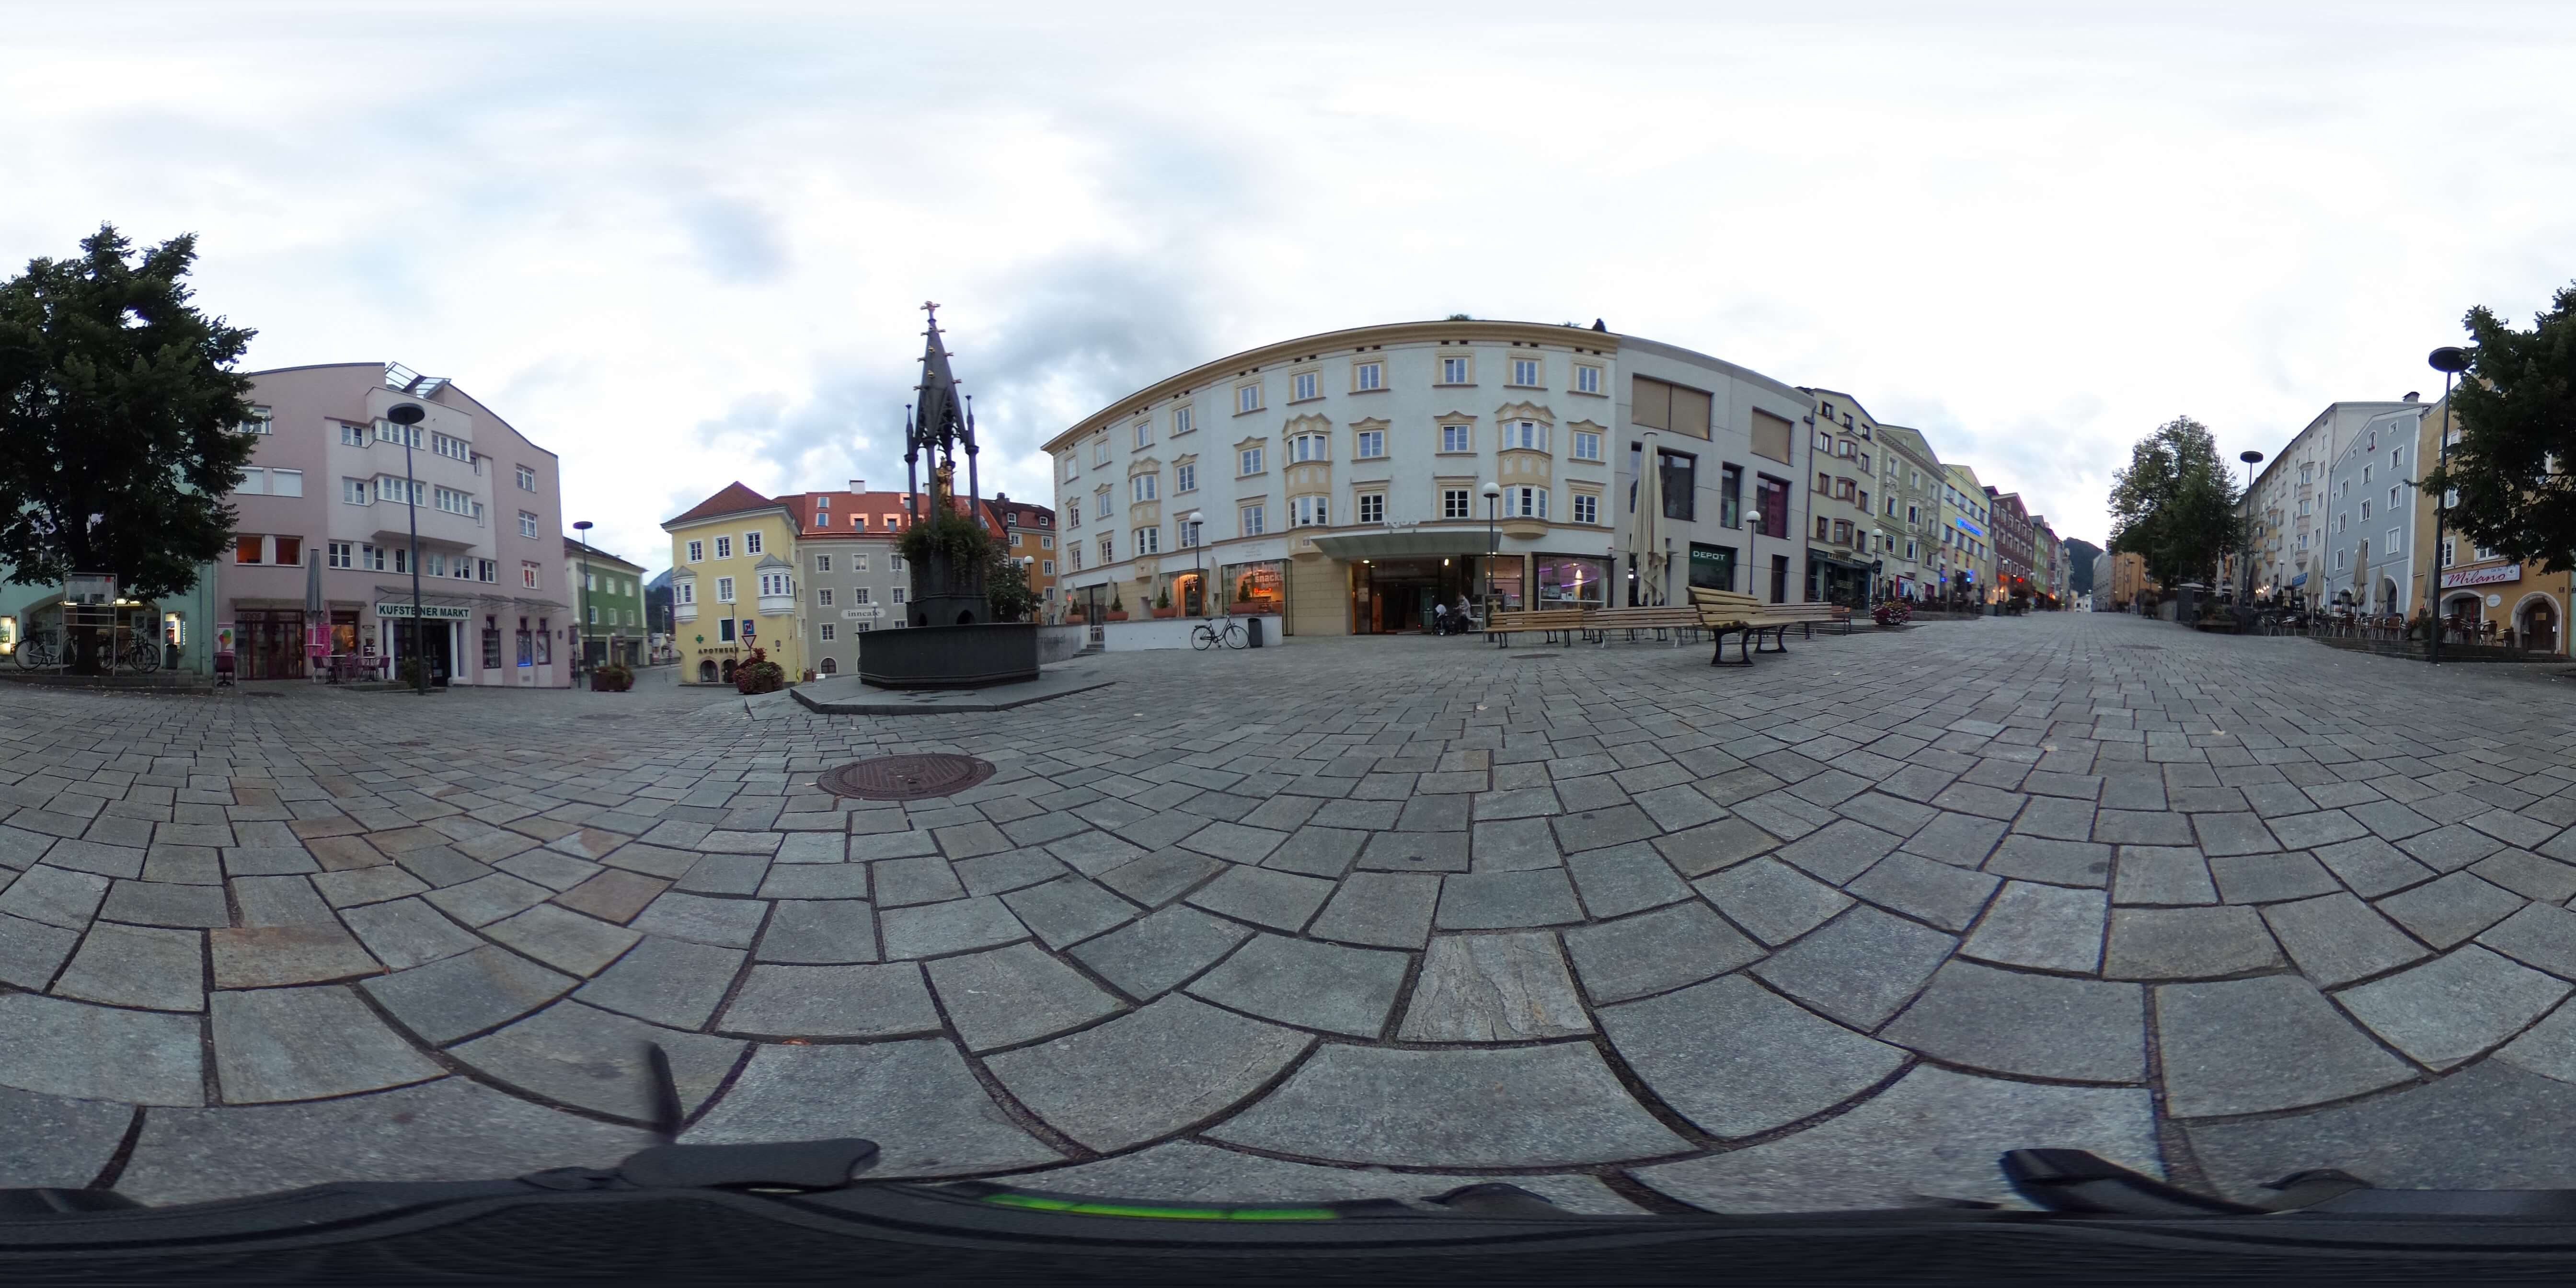 Kufstein-Stadtplatz-Original social media Facebook 360 degree video 360 degree photo